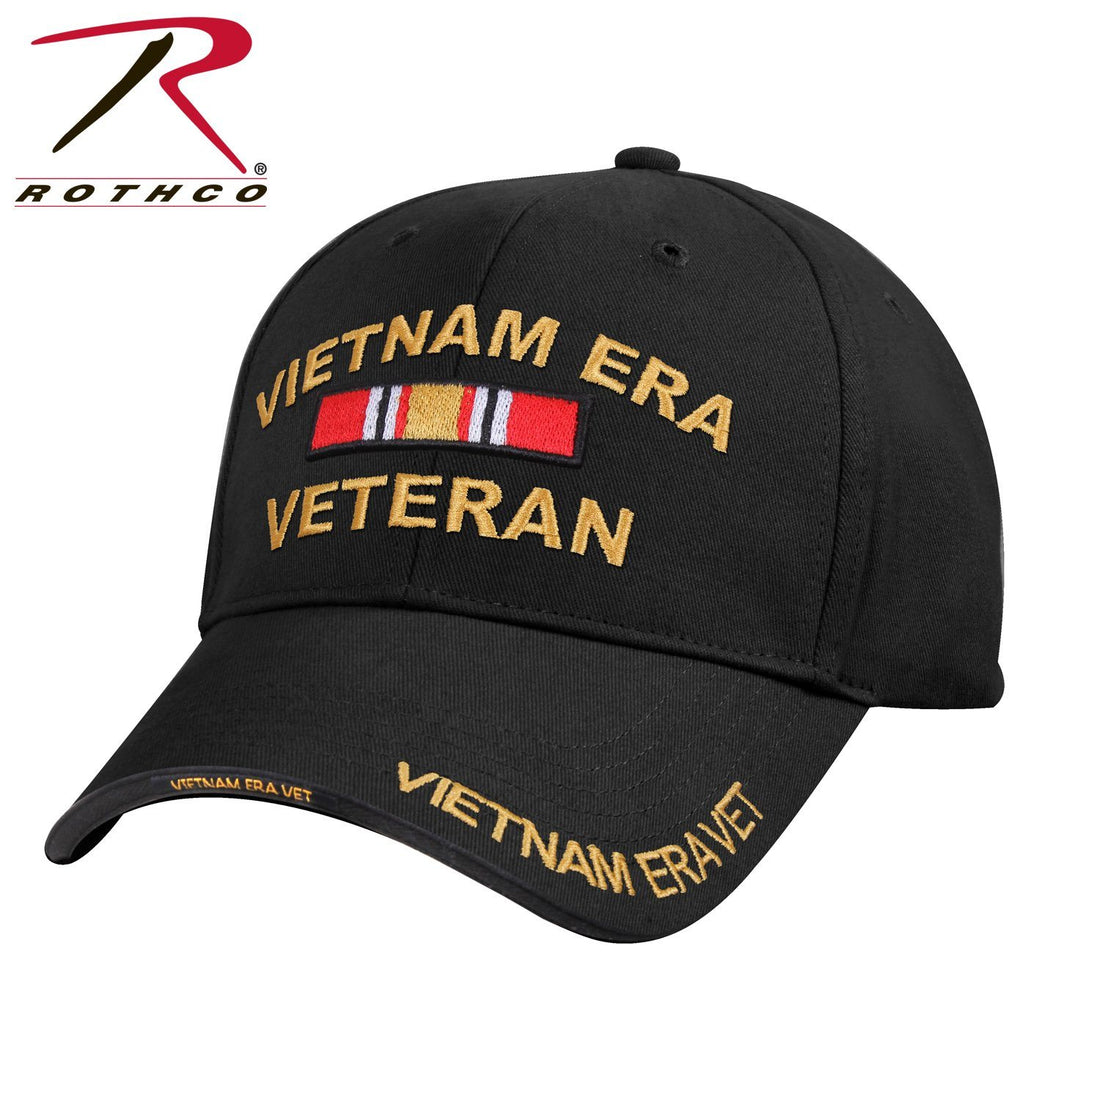 "Front view of the Vietnam veteran hat at Marine Corps Direct that has and embroidered ribbon and text that reads ""VIETNAM ERA VETERAN"" on the front of the hat, front of the bill, and the side of the bill."